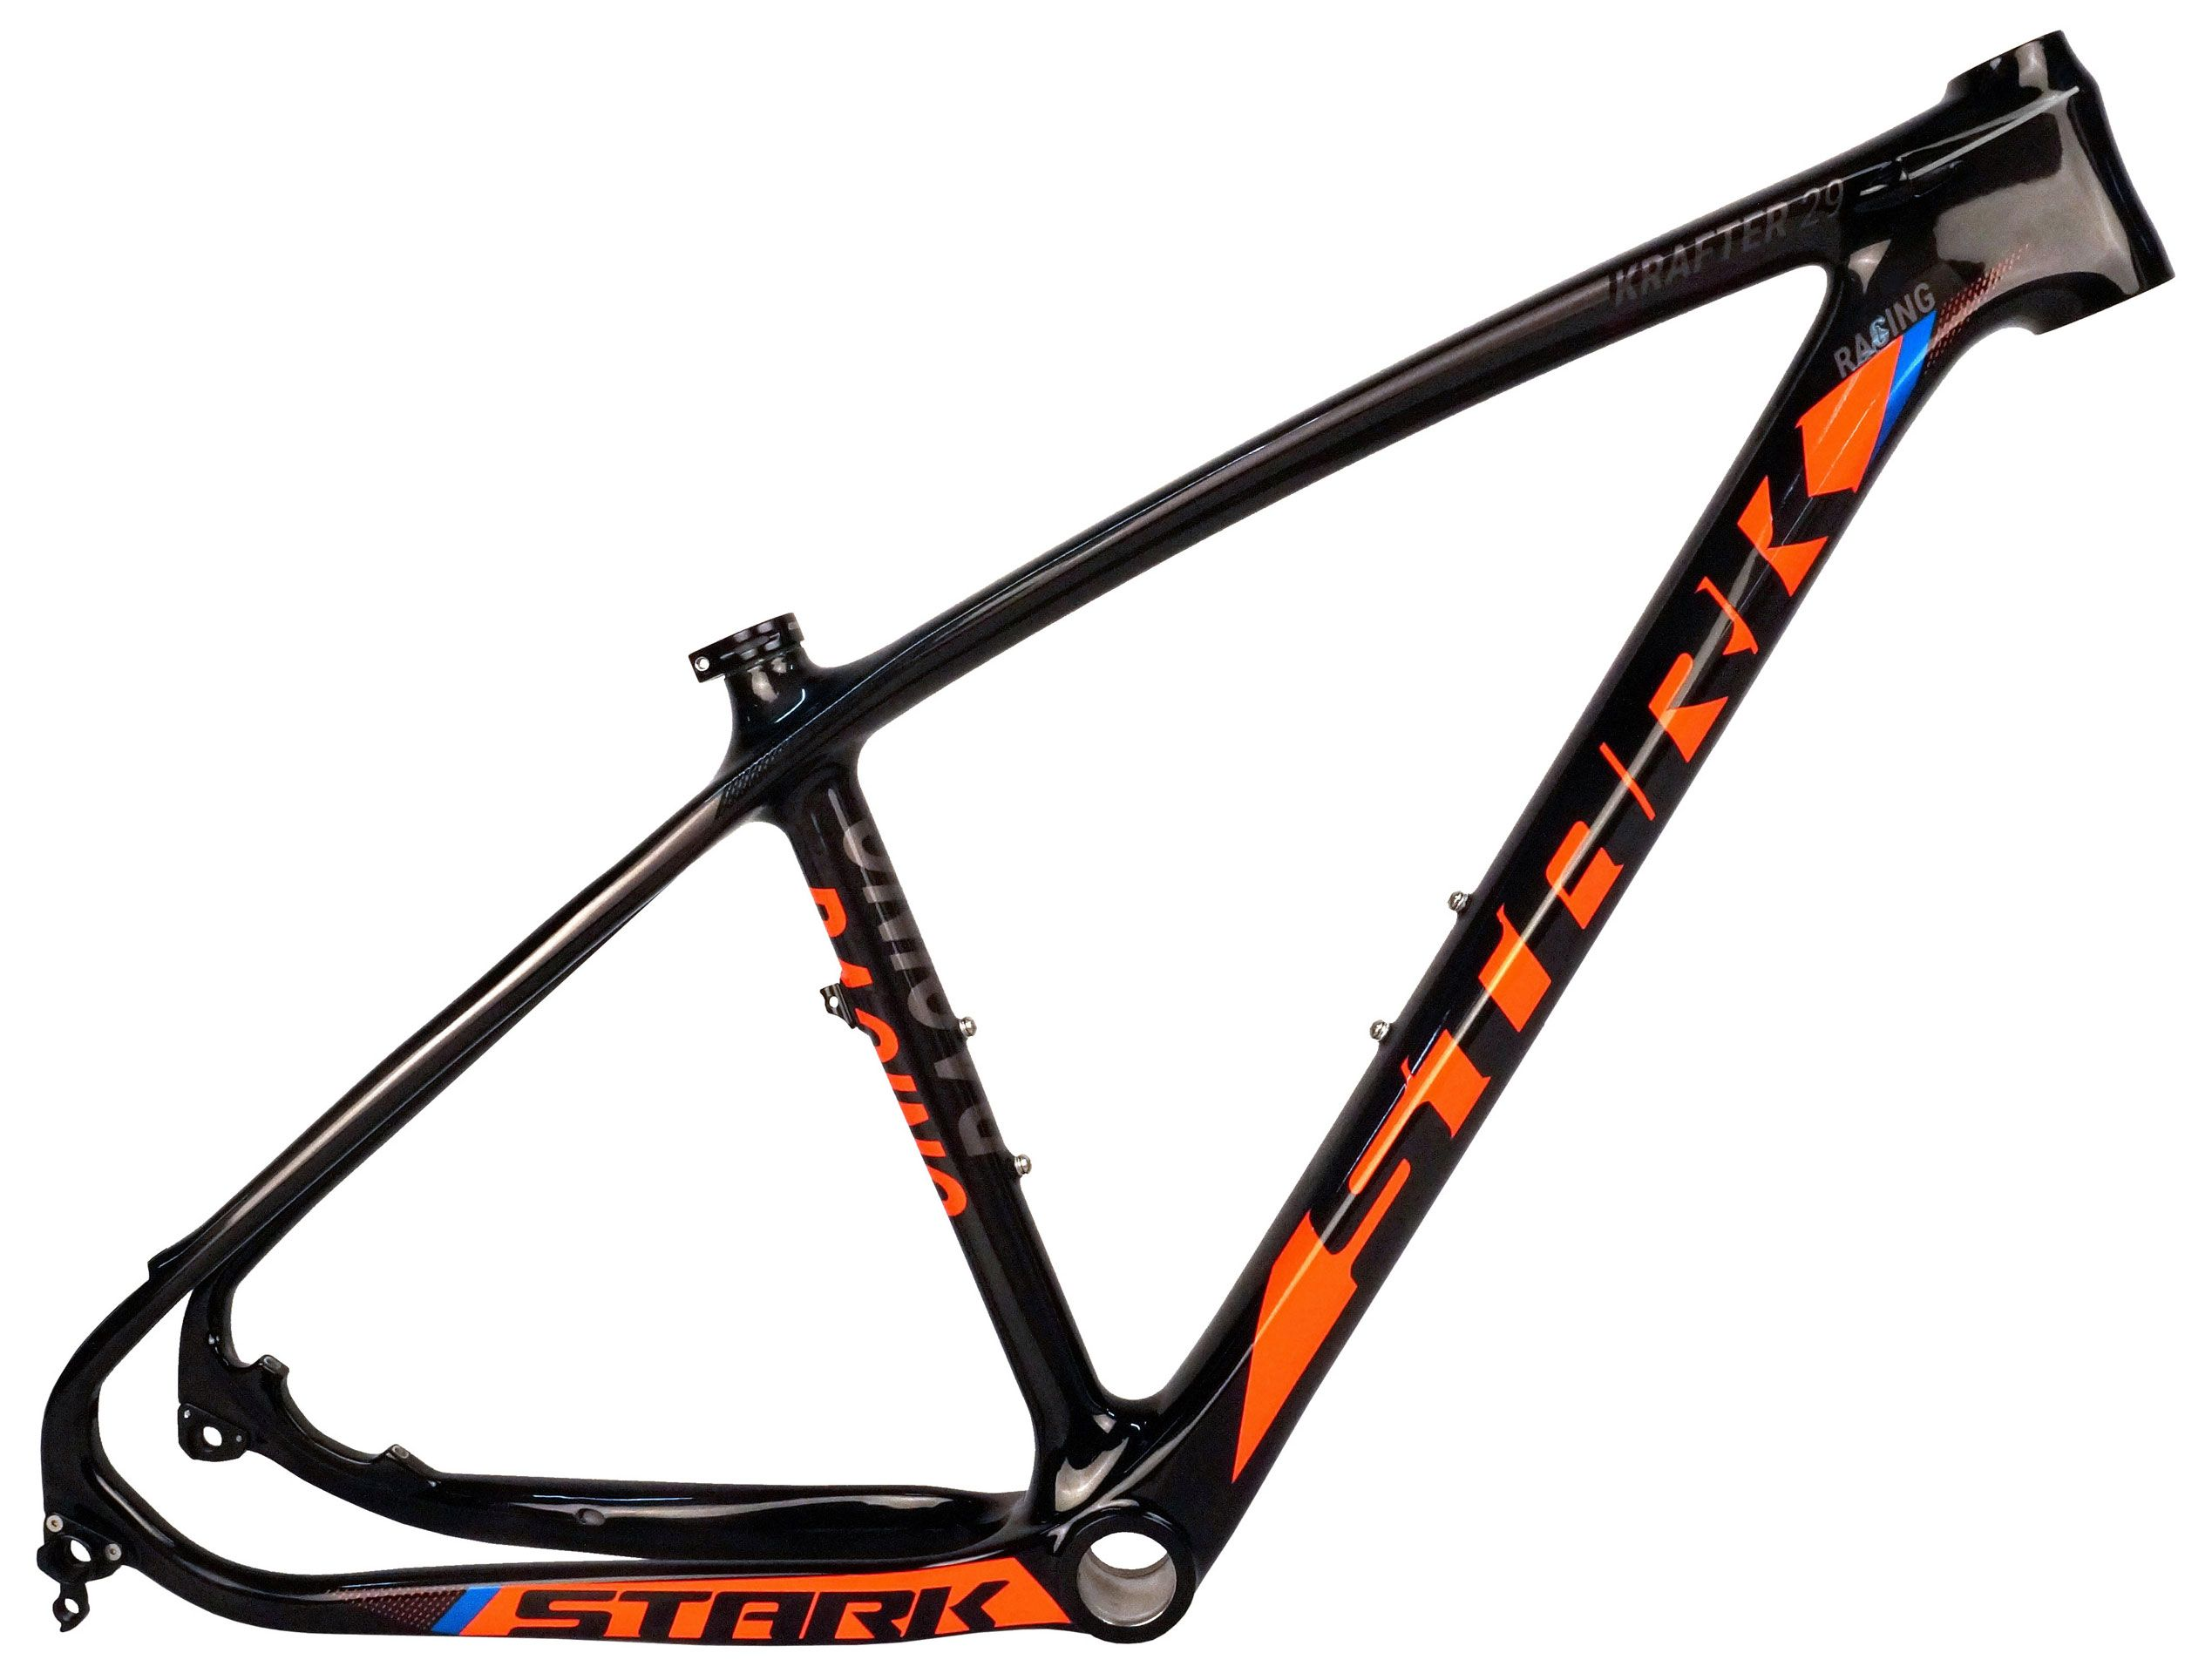 Запчасть Stark Krafter 29er Carbon Frame smileteam 29er 27 5er carbon mtb frame 650b t1000 full carbon mountain bike frame 142 12 thru axle or 135 9mm qr bicycle frame